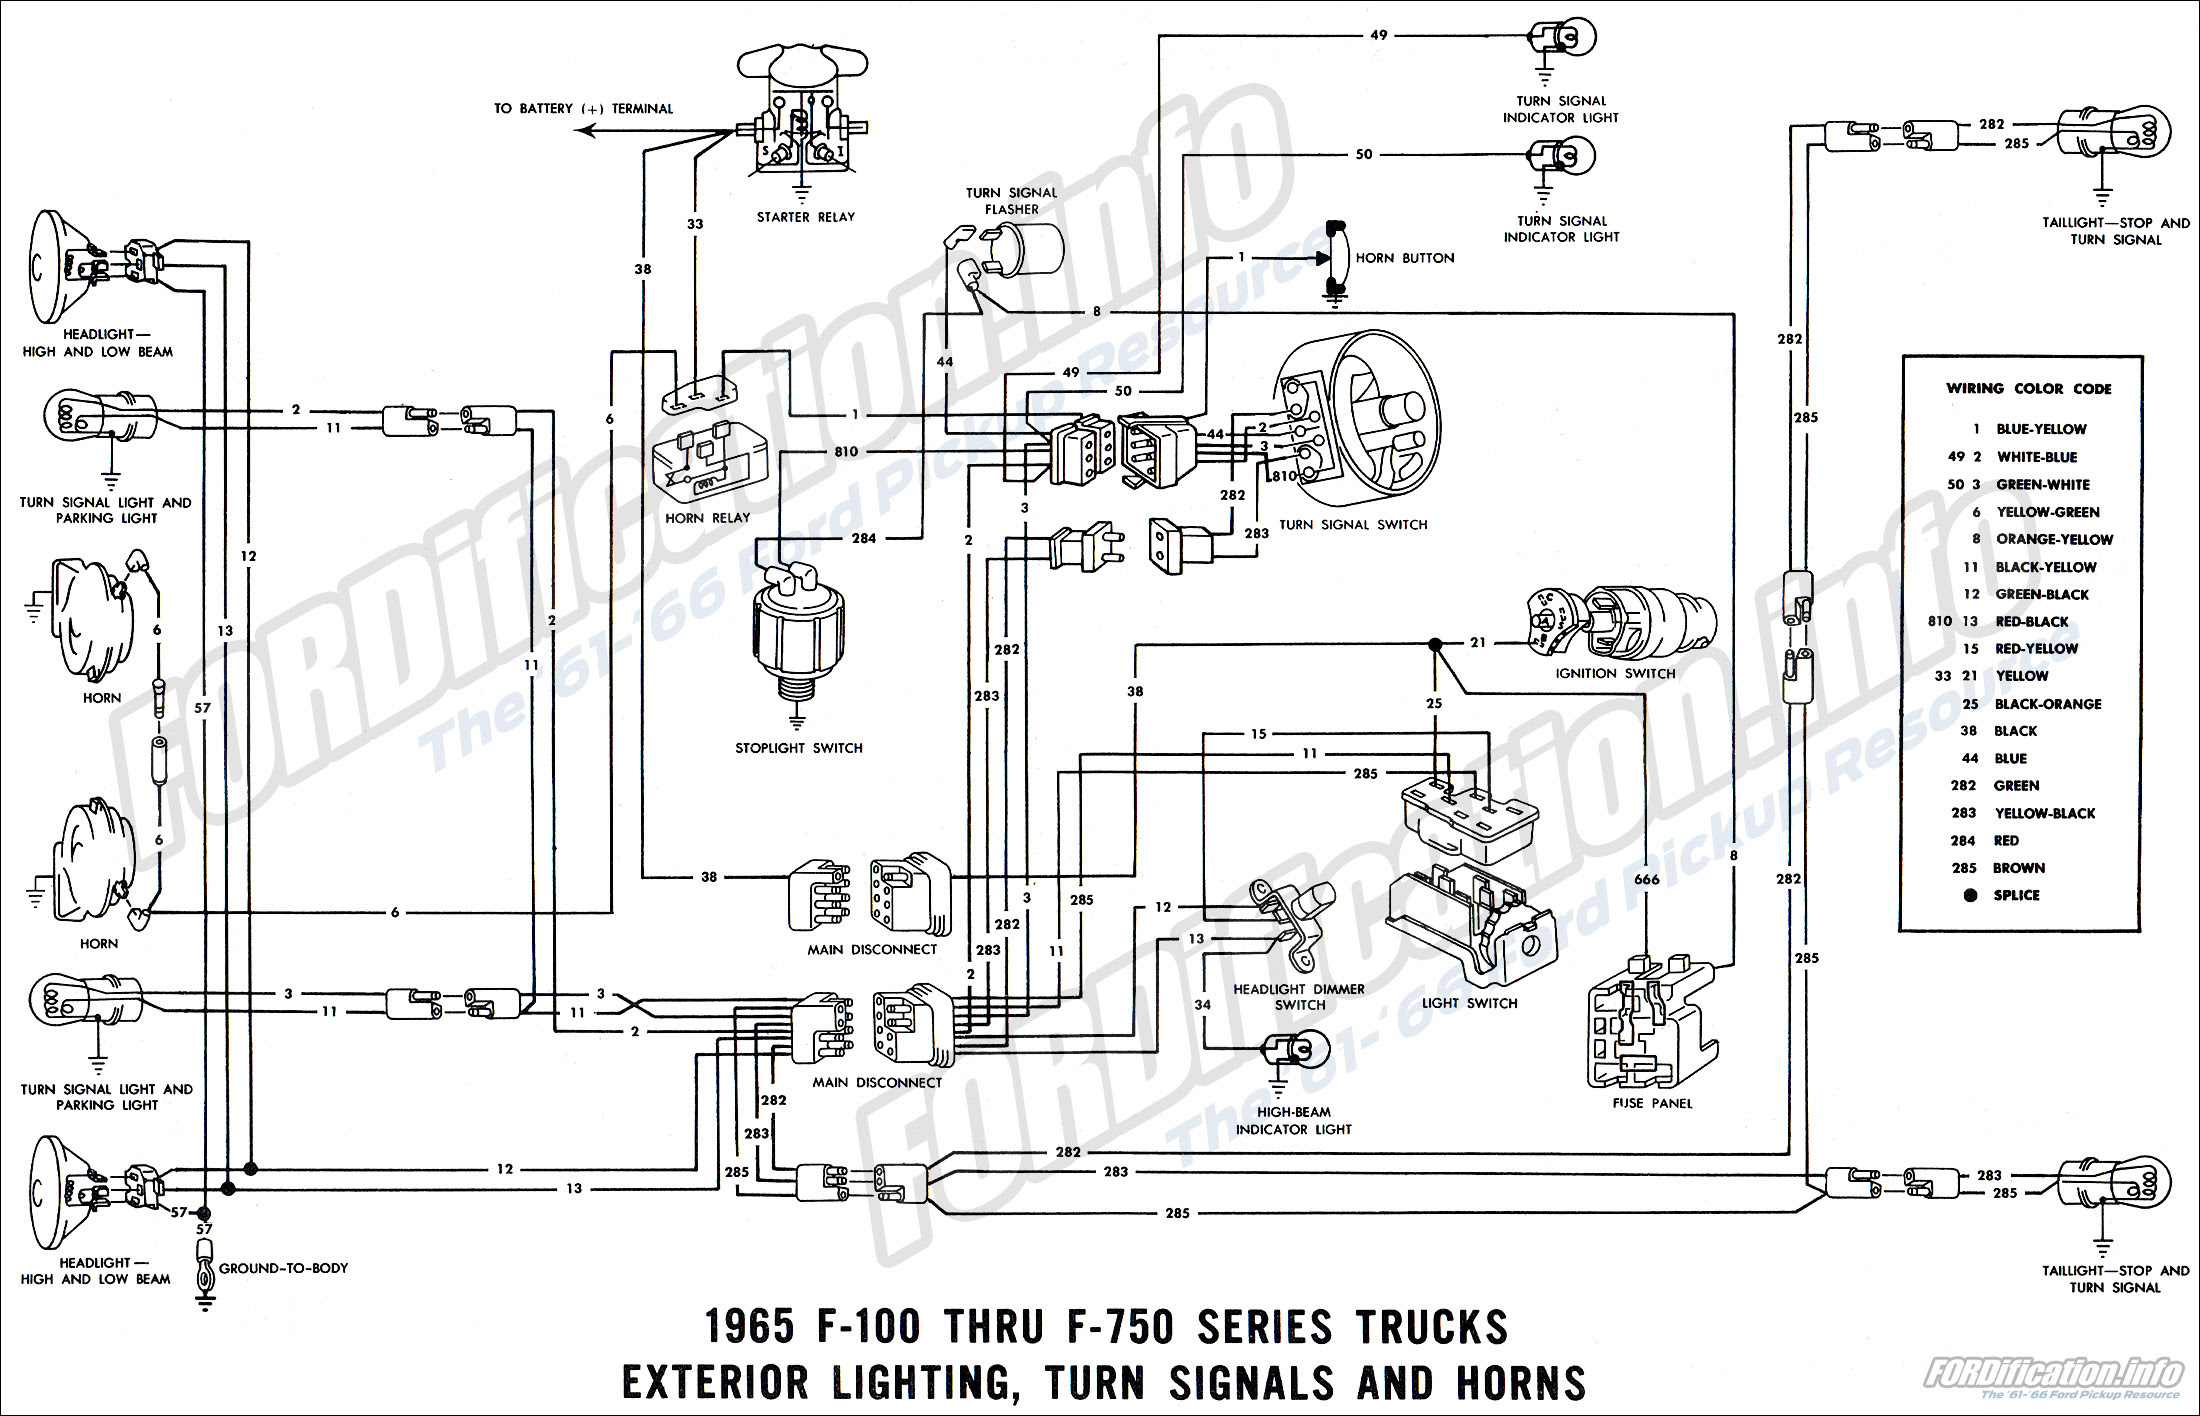 1970 ford pickup wiring diagram - wiring diagram schema form-shape -  form-shape.atmosphereconcept.it  atmosphereconcept.it